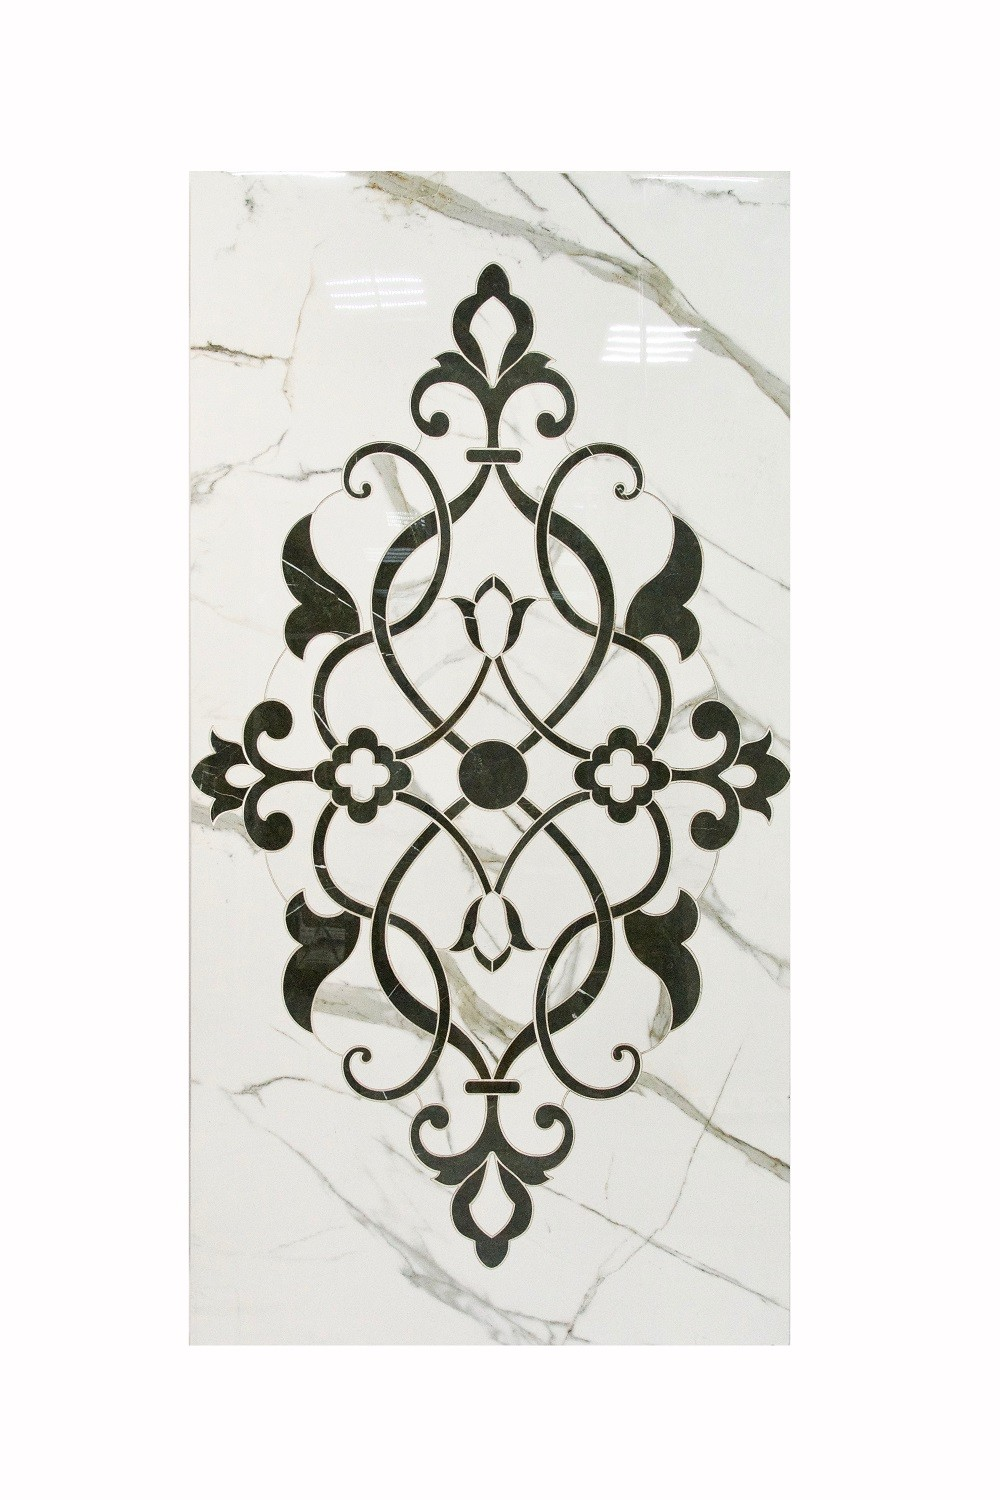 bathroom porcelain ceramic tile picture cutting 800x1600x95 wall tile decoration buy tiles ceramic tiles price ceramic flower wall decor product on